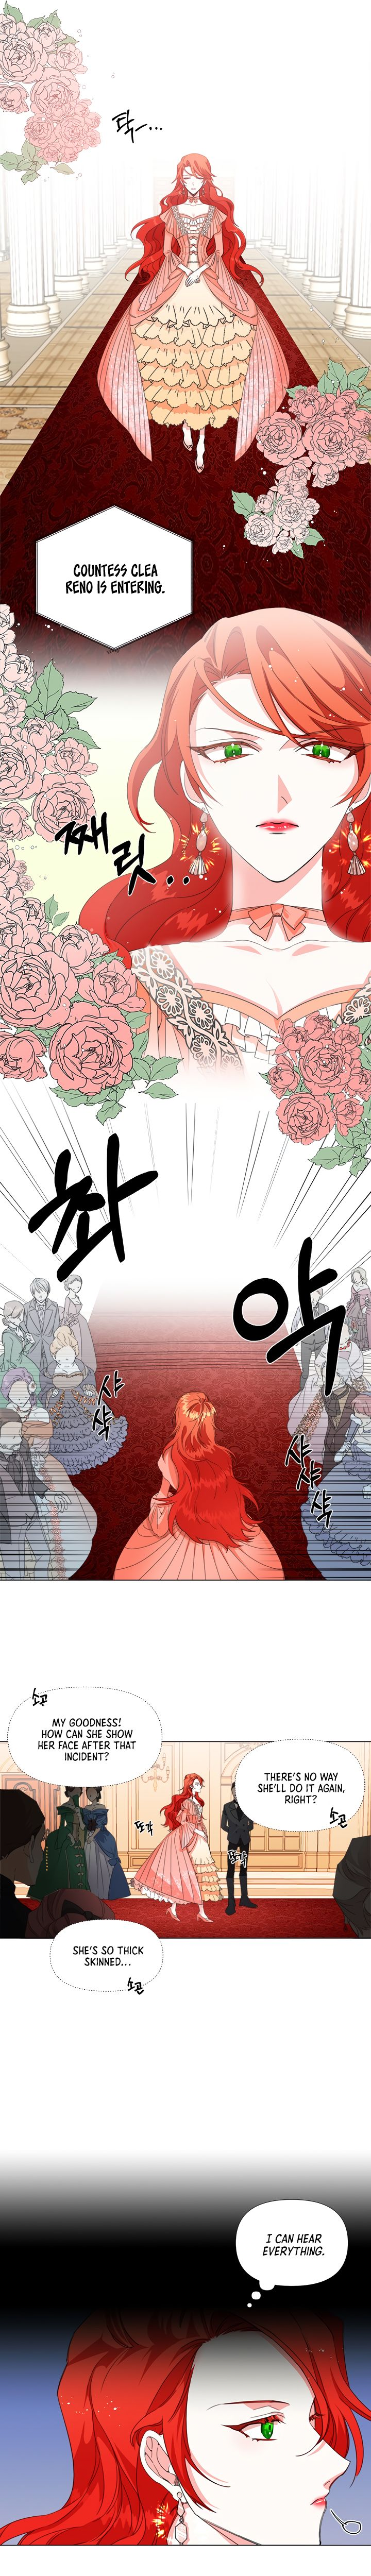 Happy Ending For The Time-Limited Villainess - chapter 1 - #2